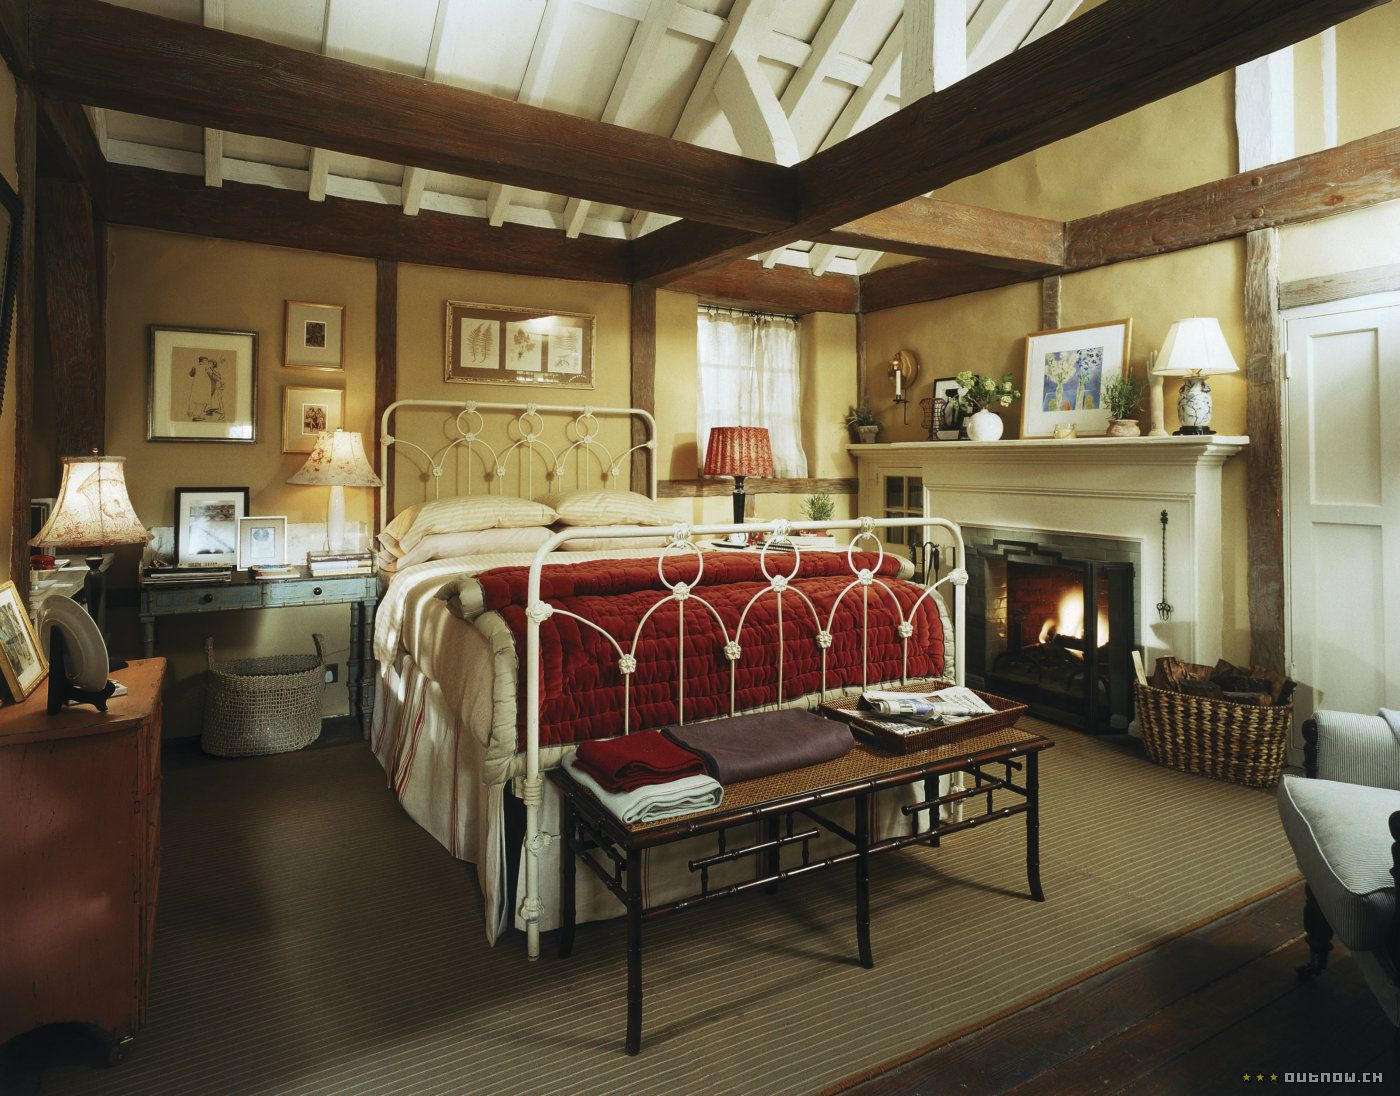 Bedroom of Rosehill Cottage in the movie  The Holiday. The Holiday   Holidays  Bedrooms and Movie